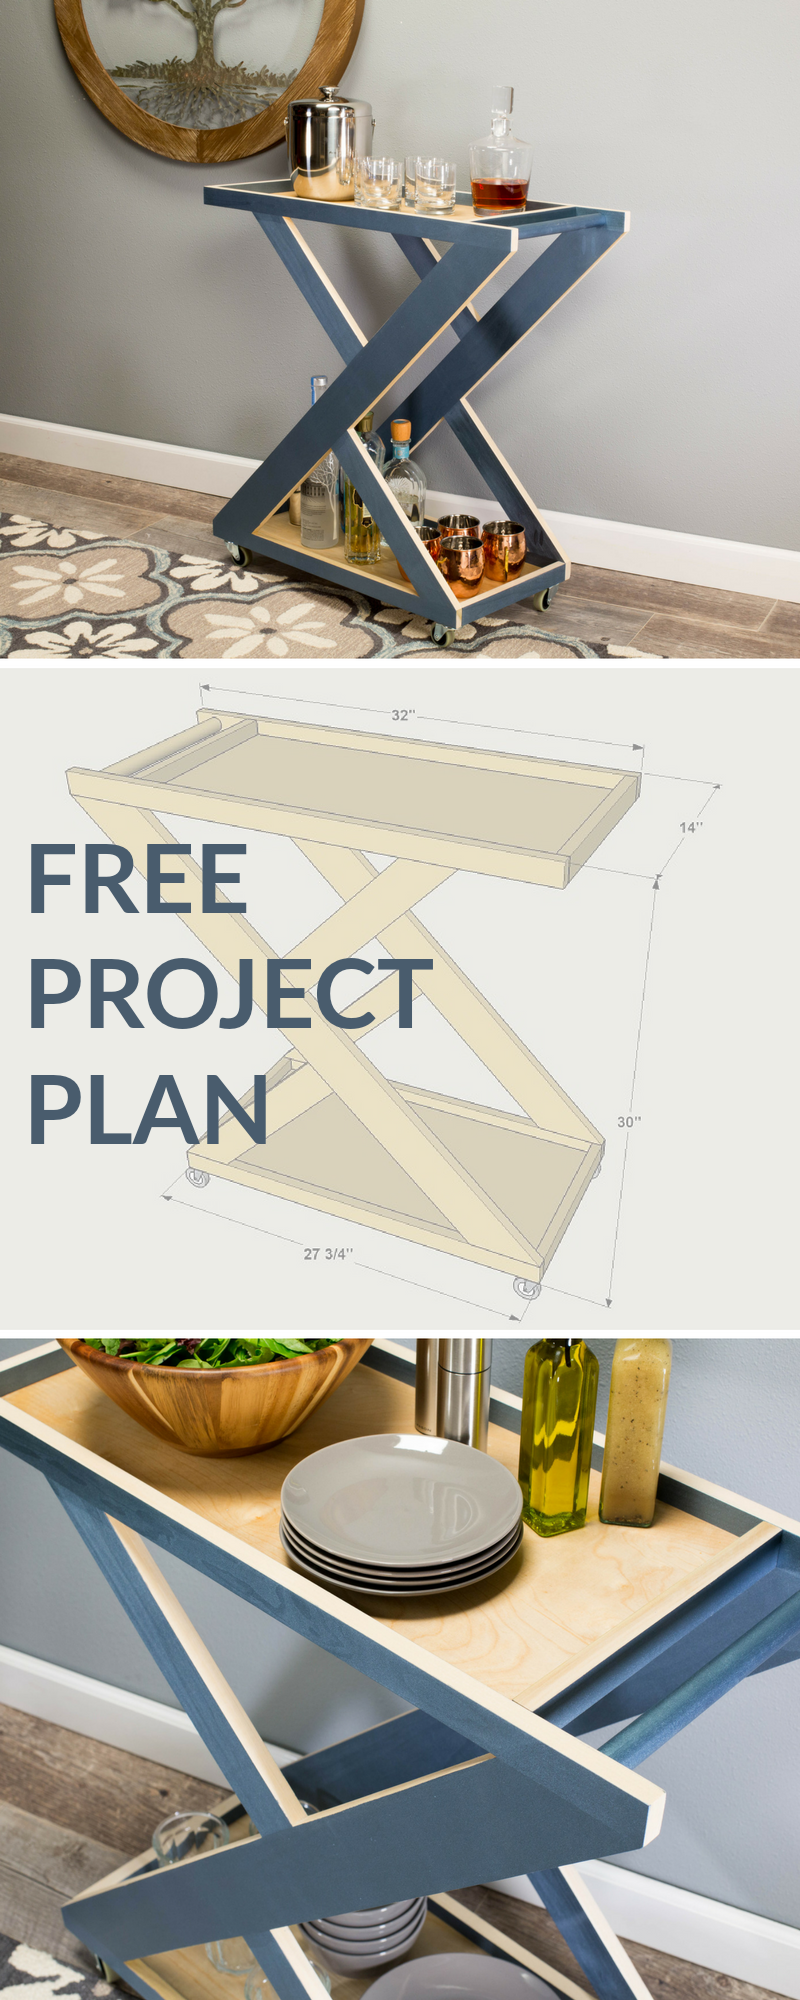 cutting diagram tools and materials list on buildsomething com build a stylish diy bar cart from a few poplar boards a piece of plywood [ 800 x 2000 Pixel ]